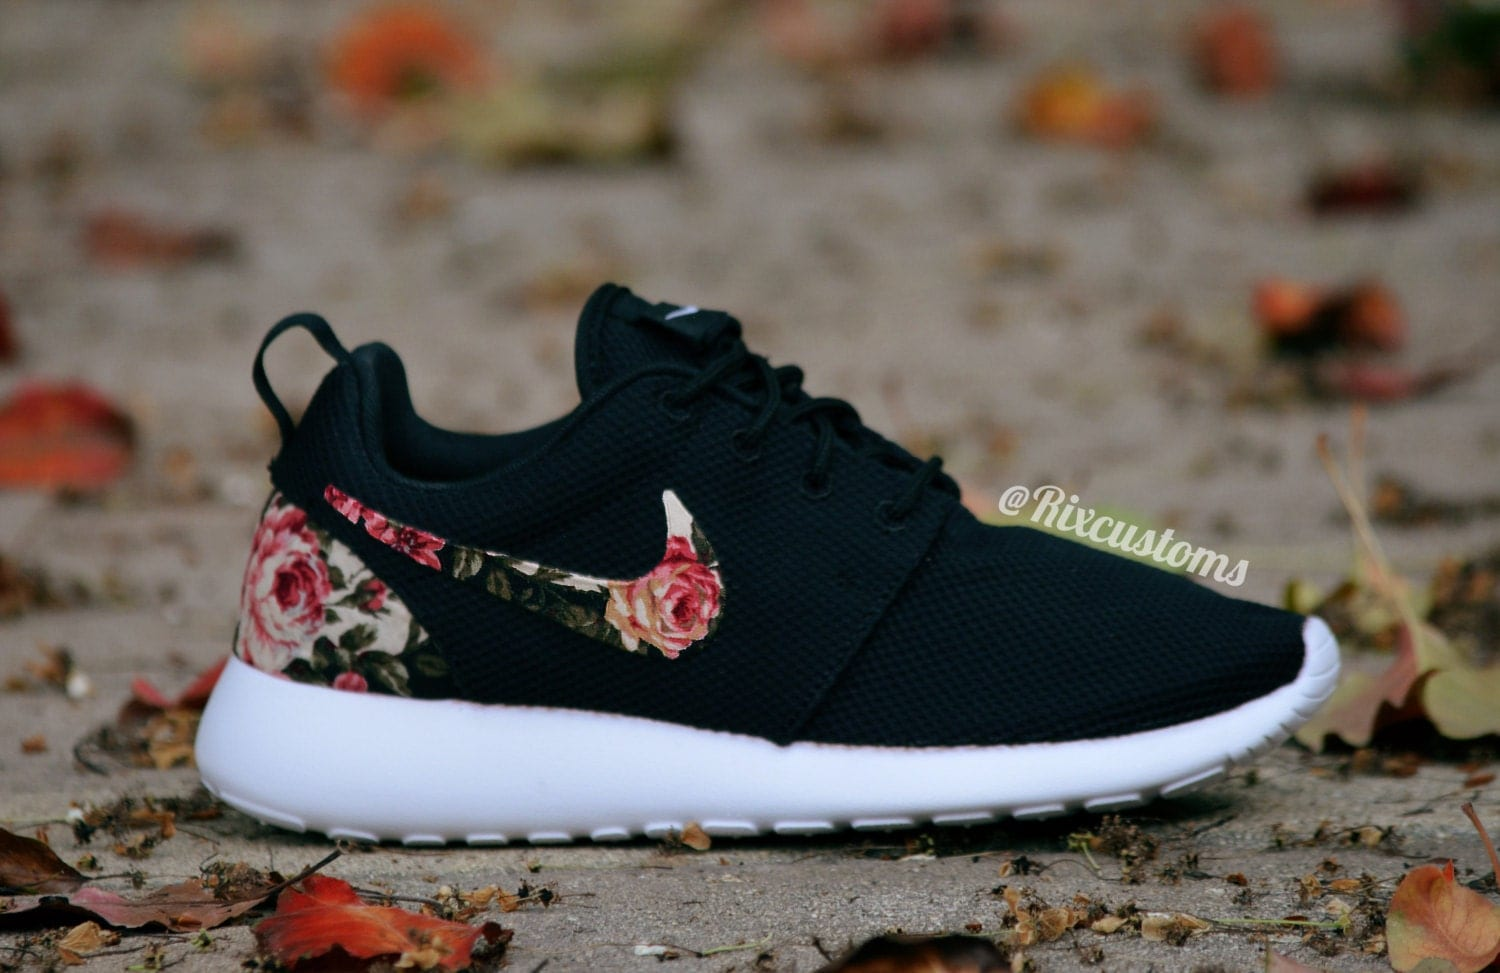 298ced7140265 Floral Nike Roshe Run Custom Black White Roses MEMORIAL DAY